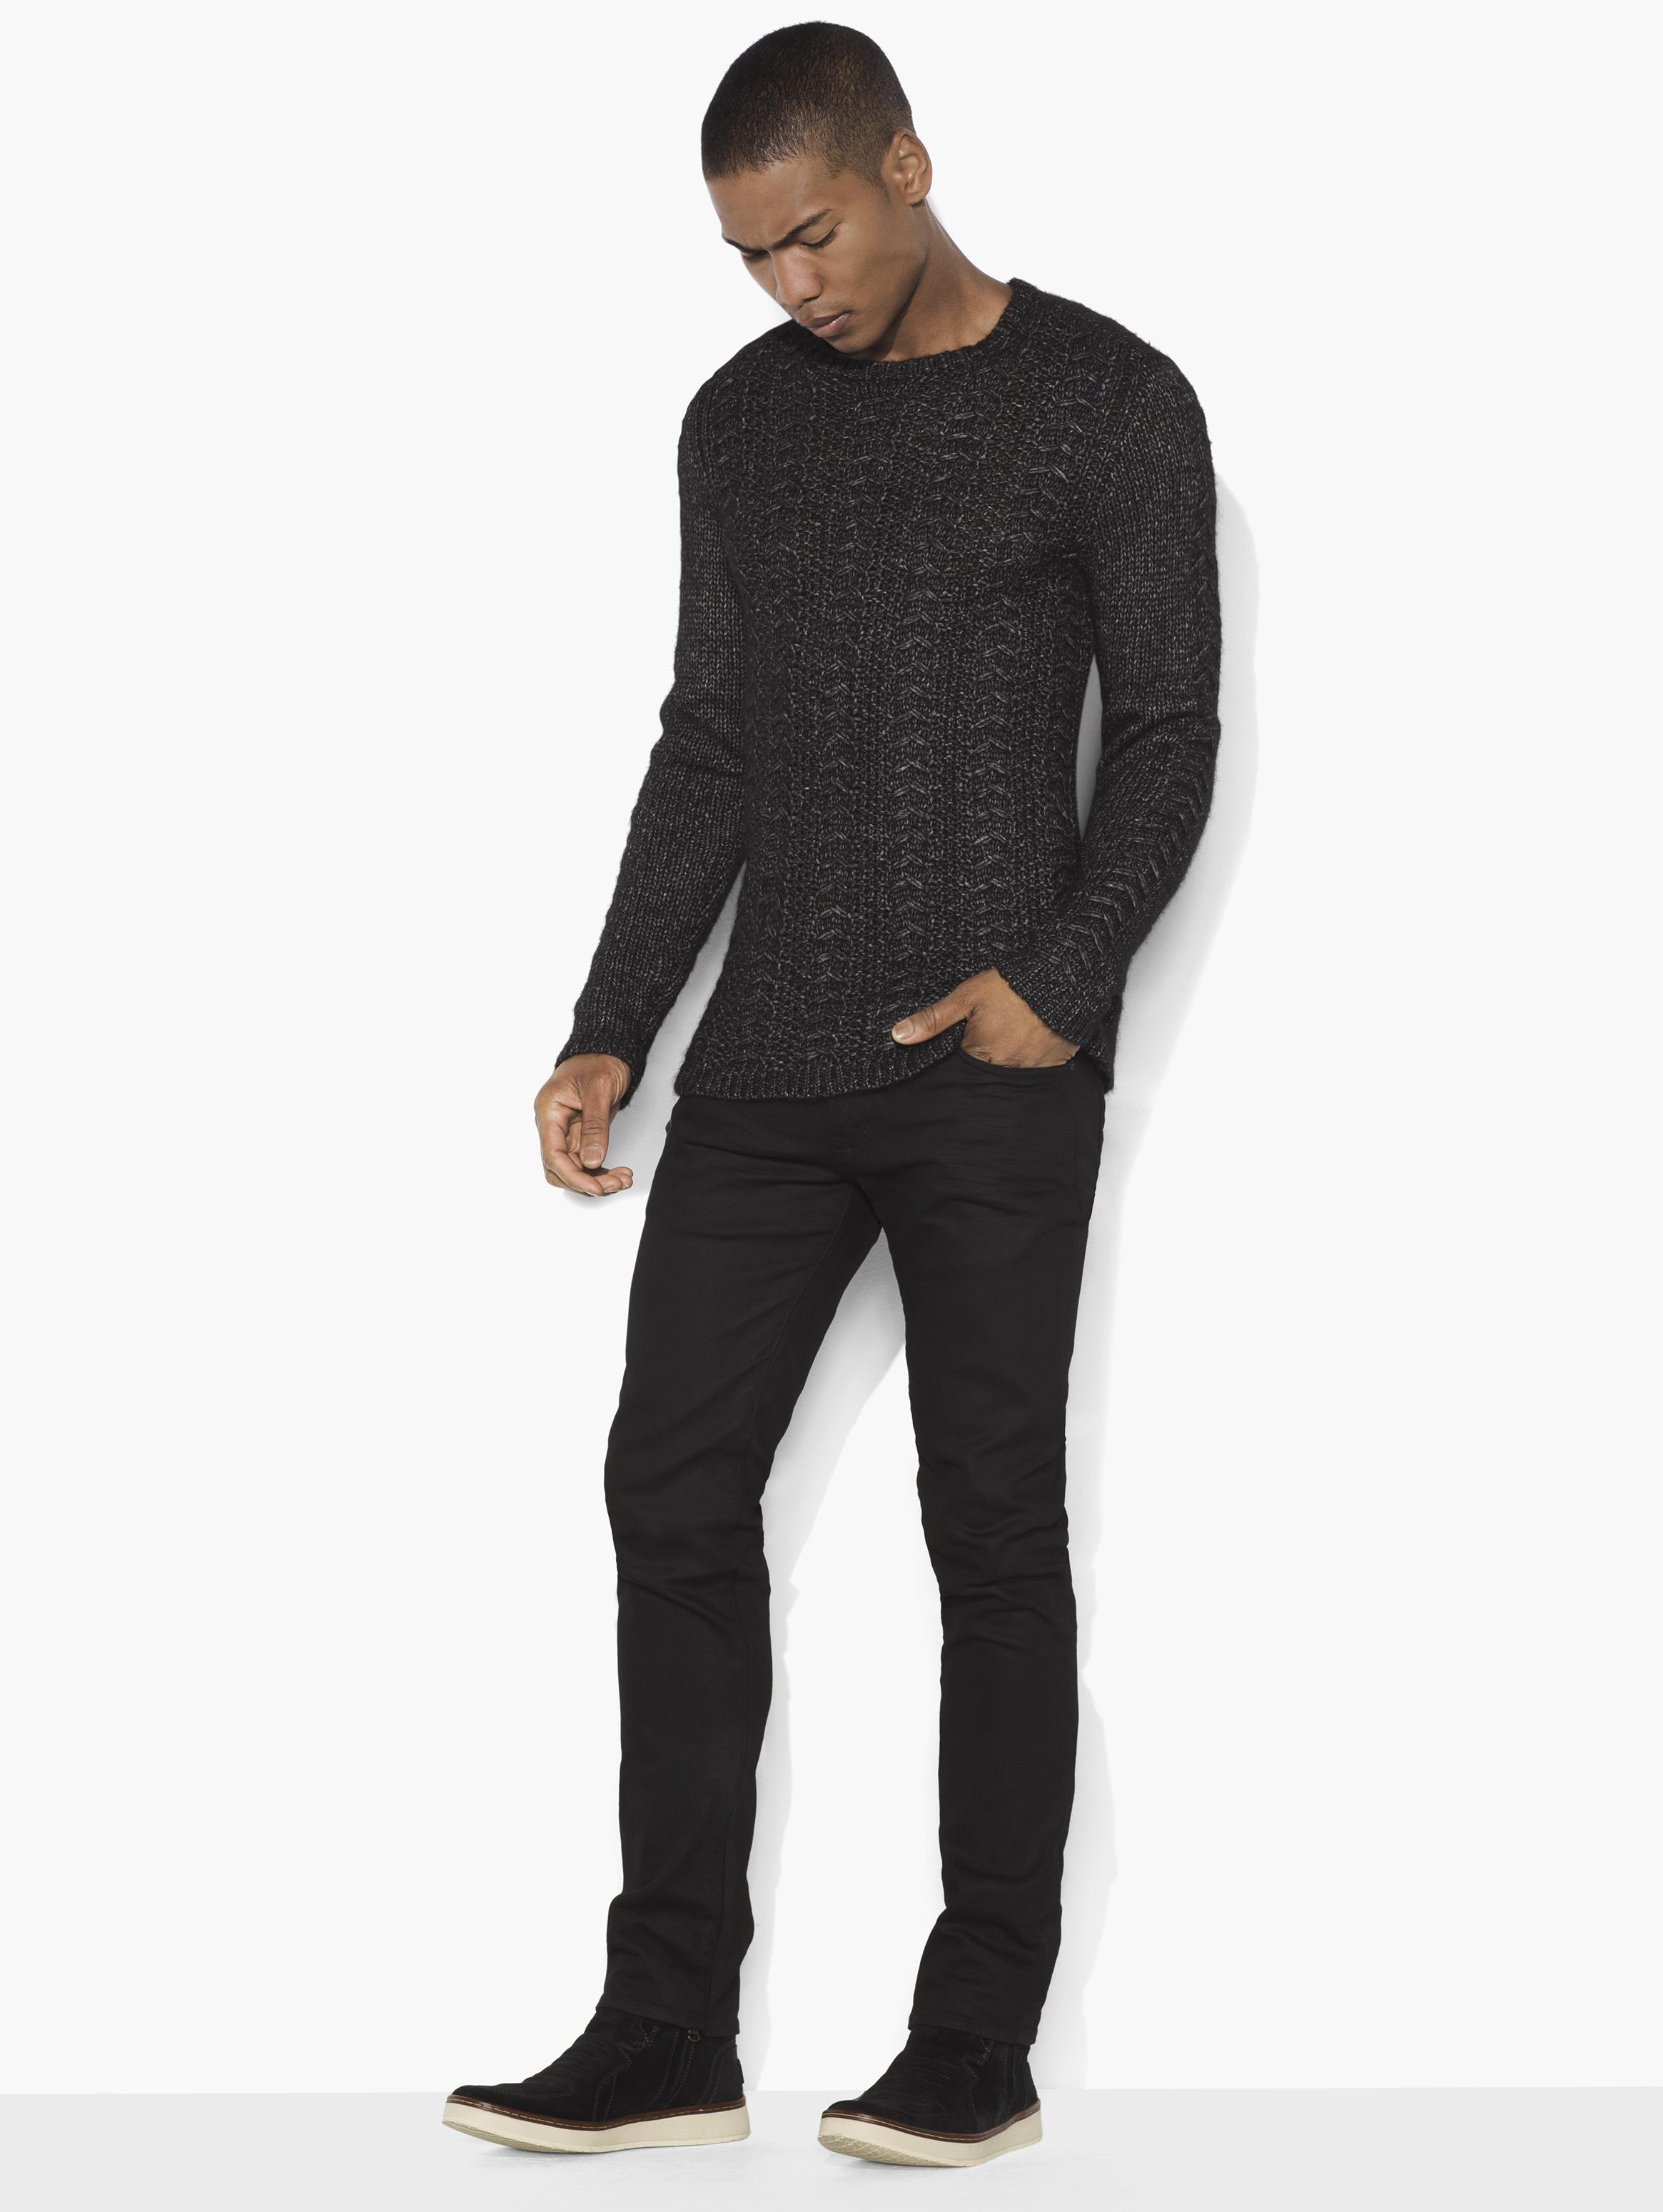 Lattice Stitch Crewneck Sweater